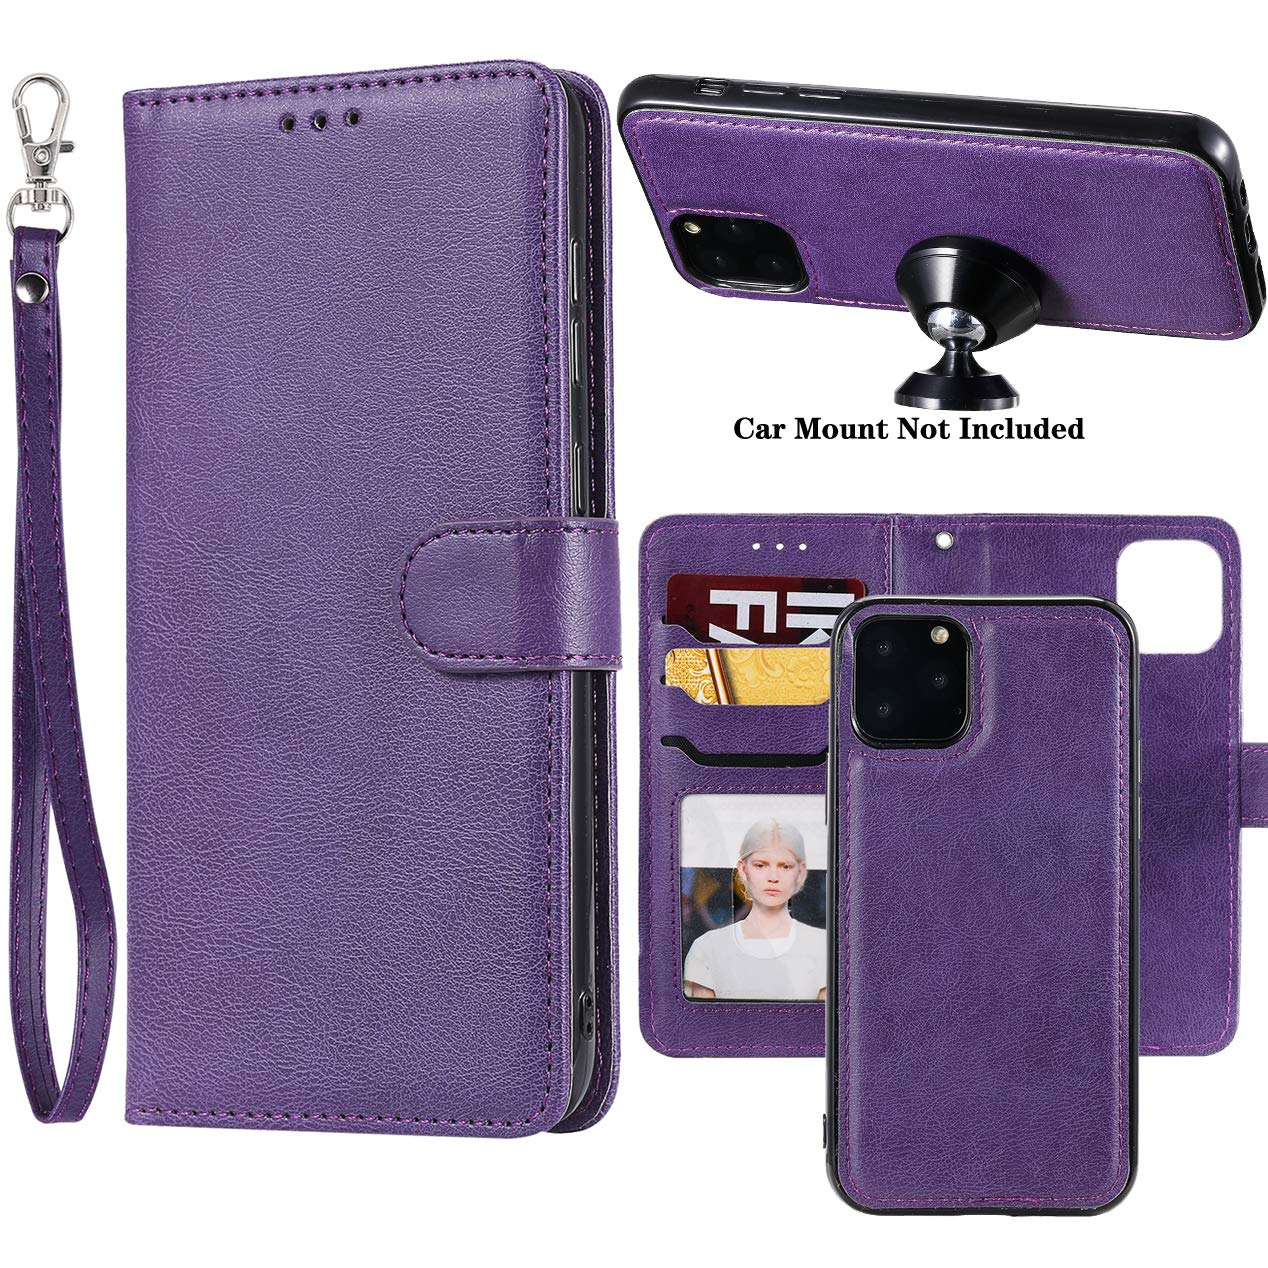 iPhone 11 Pro Max 2019 6.5 Case, Ranyi Detachable Wallet Case [Magnetic Cover Fit Car Mount] Credit Card Holder Leather Flip Folio Wallet Case for Apple 2019 6.5 Inch iPhone 11 Pro Max (Purple) by Ranyi